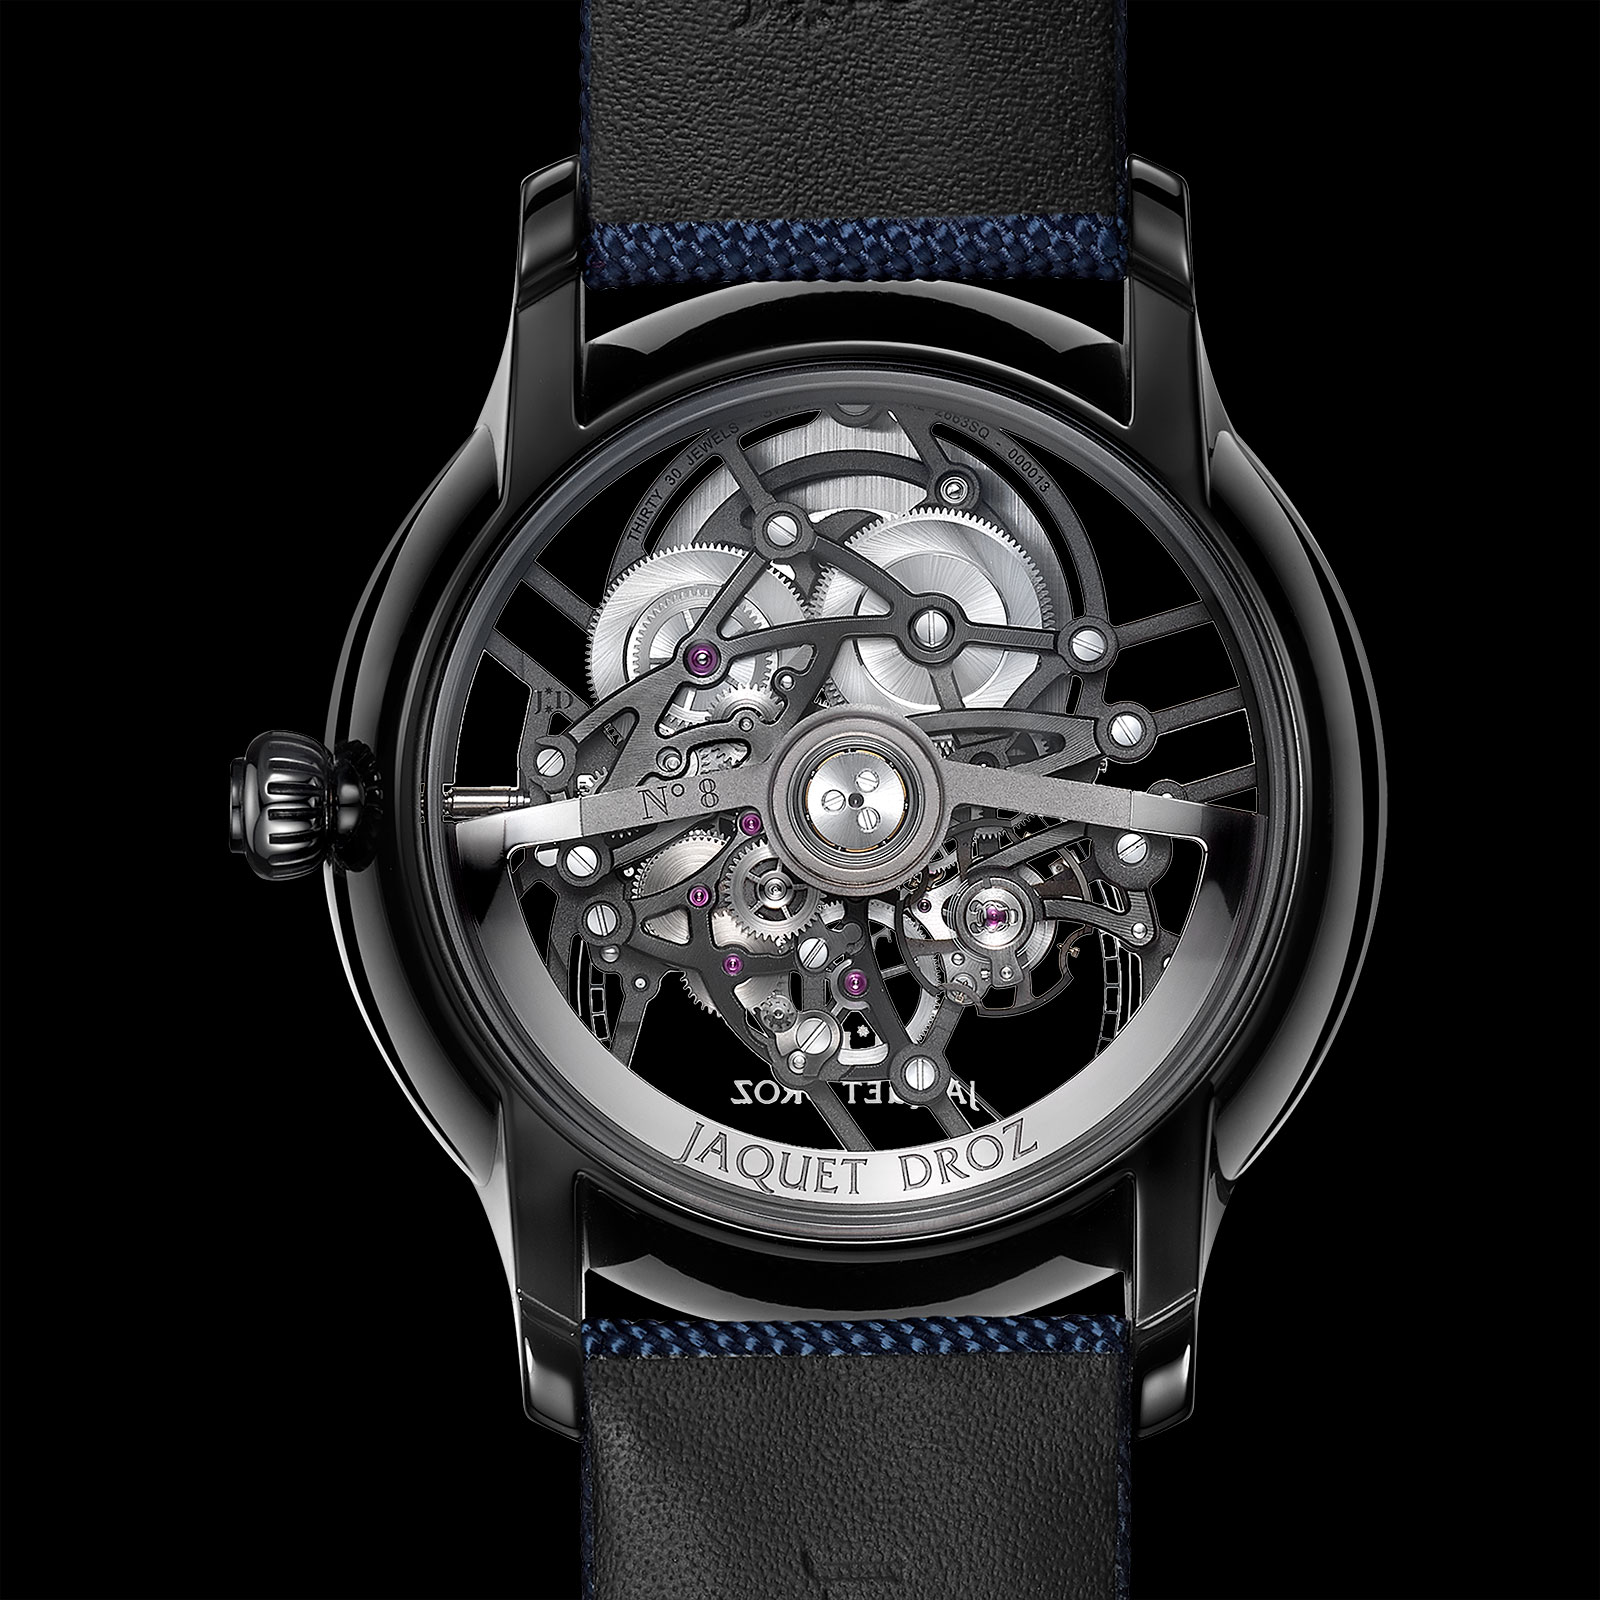 Jaquet Droz Grande Seconde Skelet-One Ceramic 4